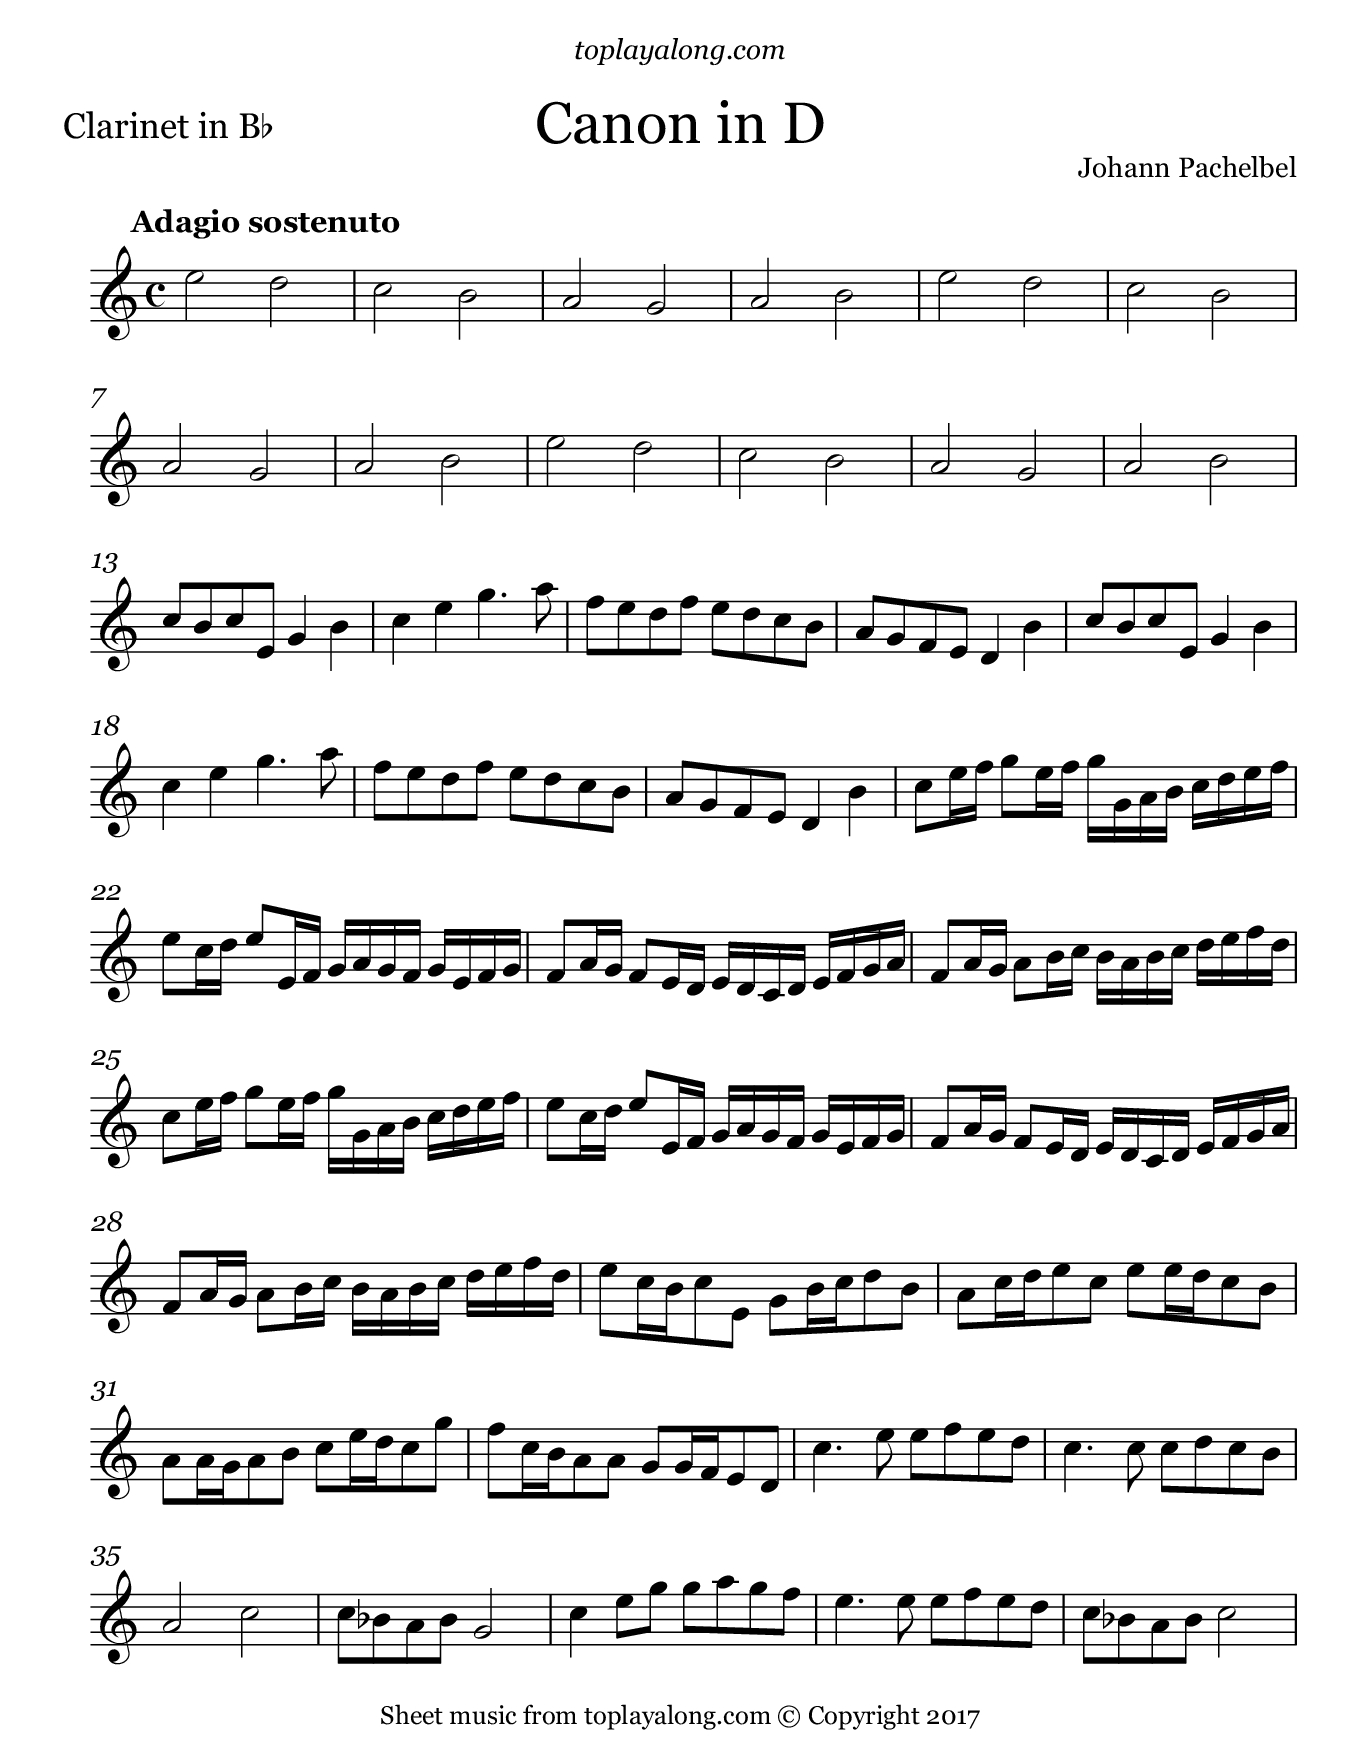 Pachelbel - Canon In D | Cleranet | Pinterest | Clarinet Sheet Music - Free Printable Clarinet Sheet Music